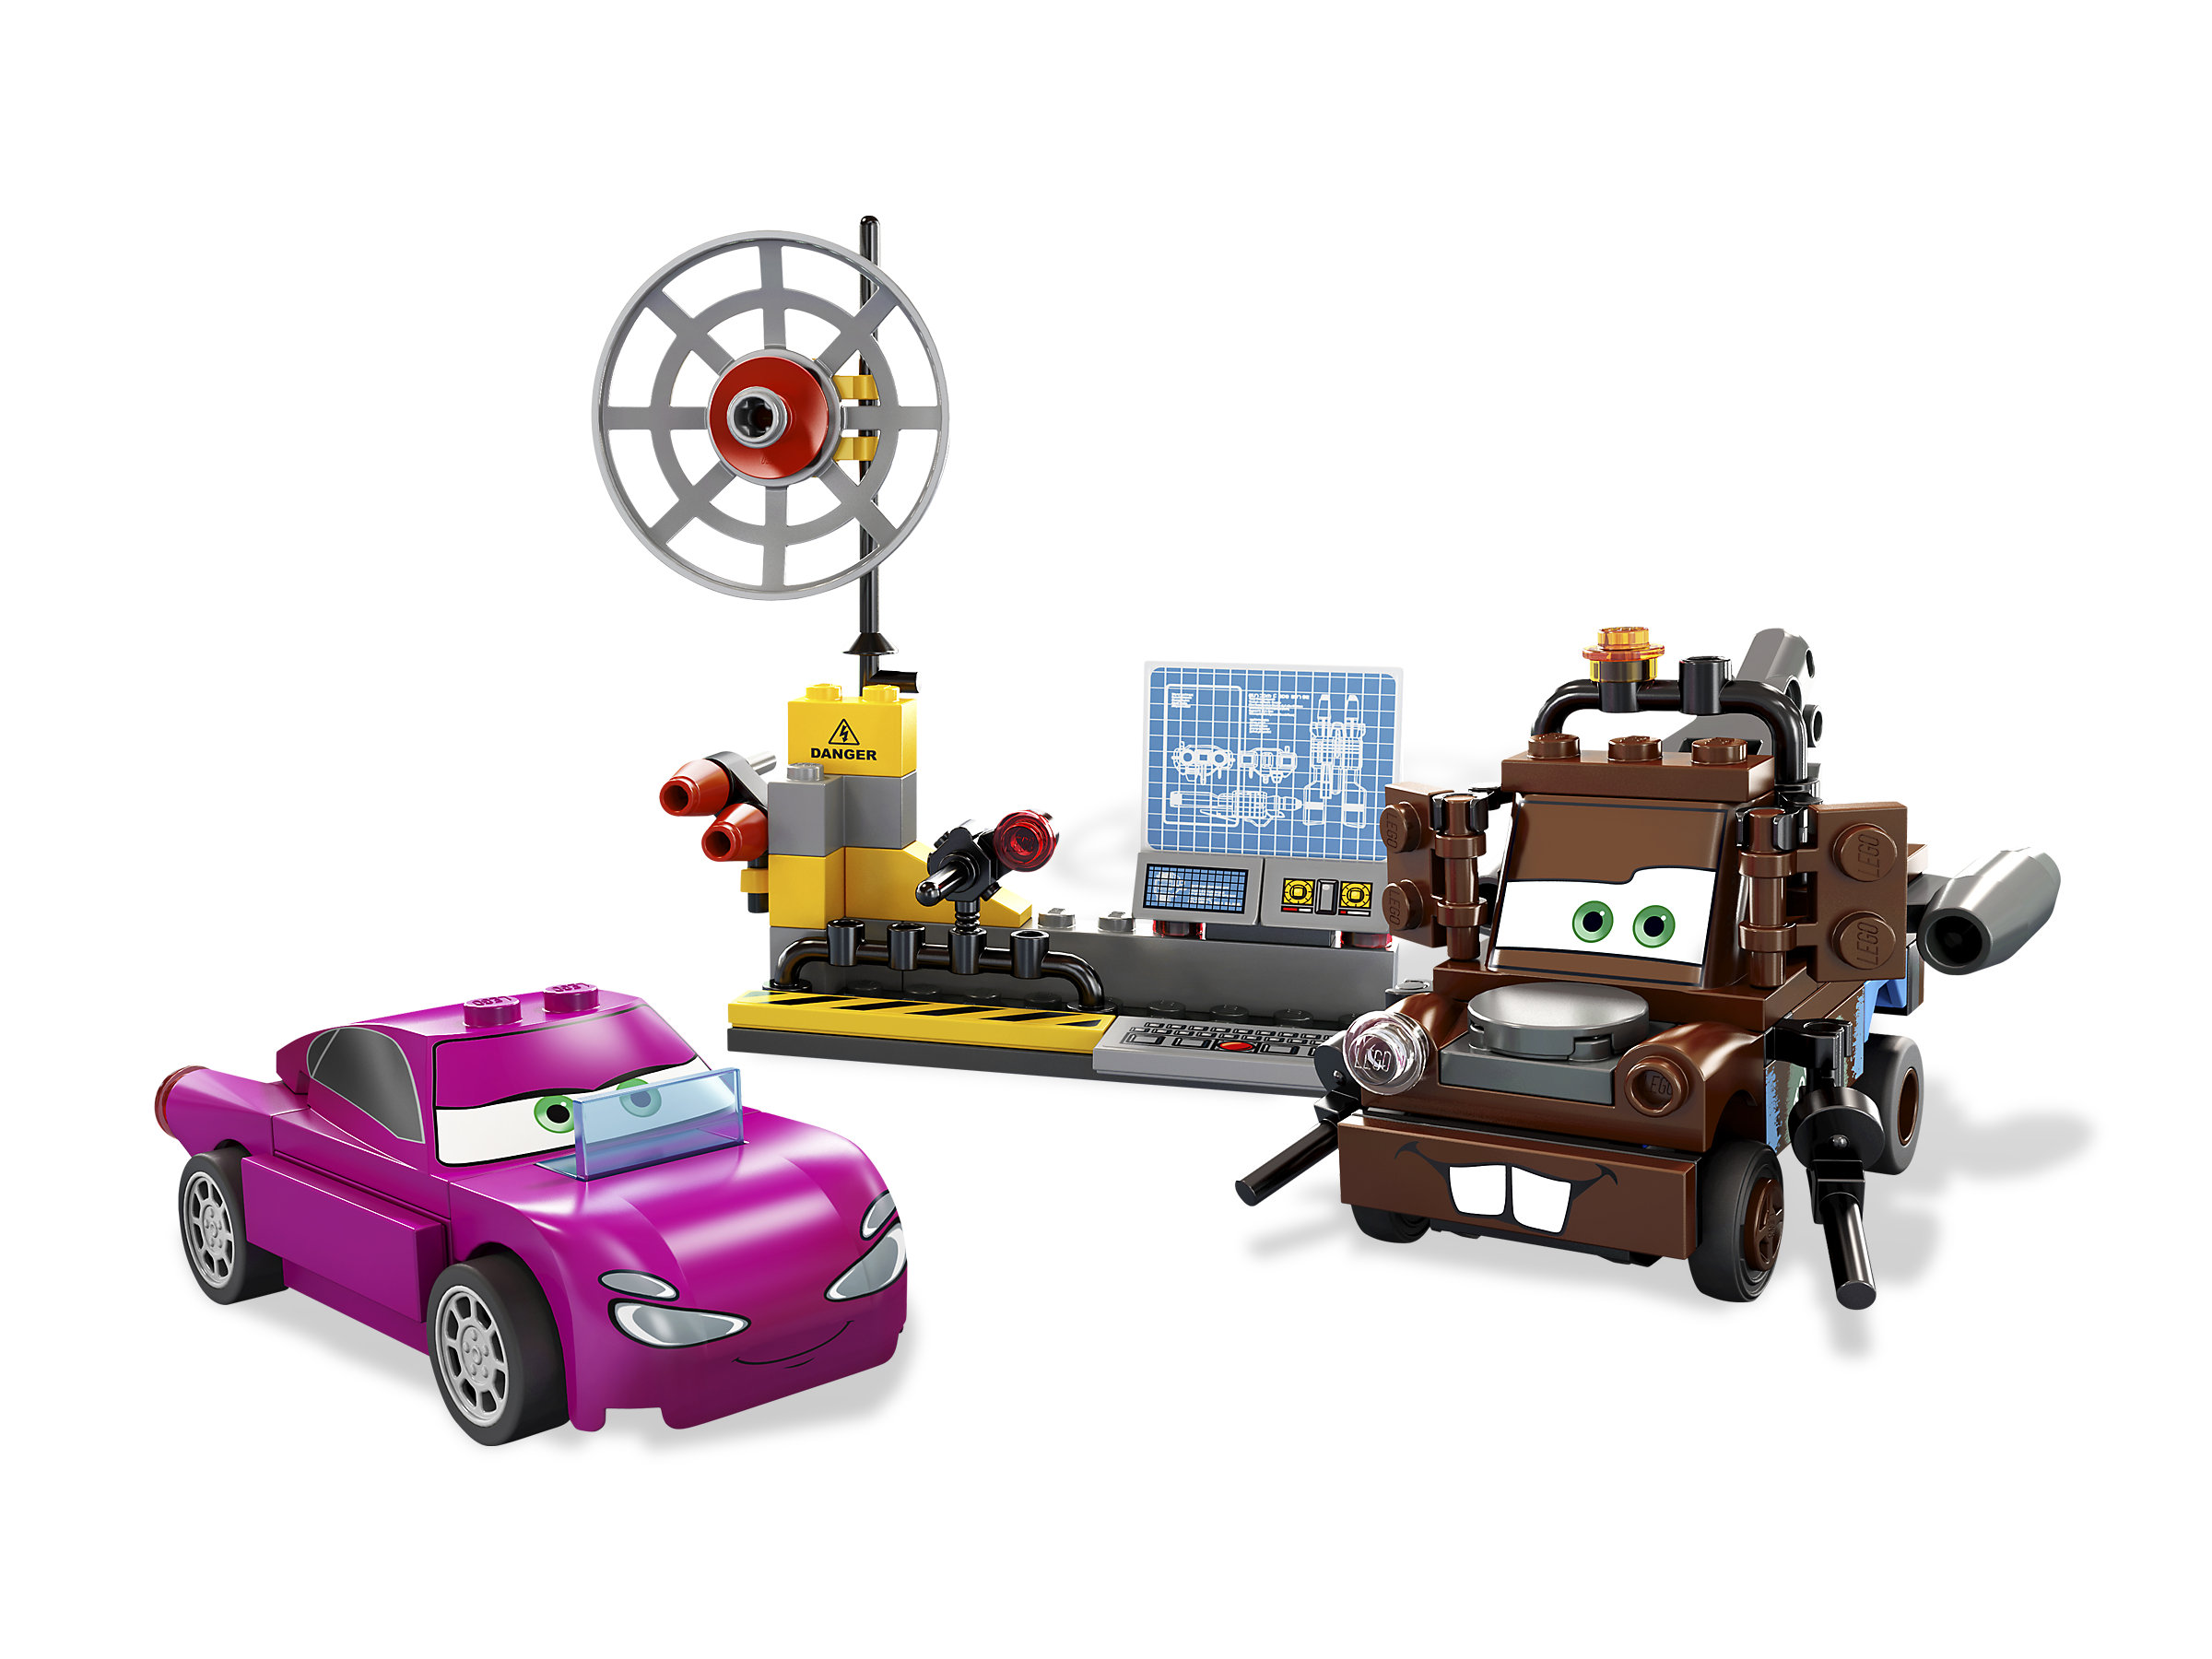 Maters Spy Zone 8424 1 Ultimate Race Set 9485 Lego Cars Released In 2011